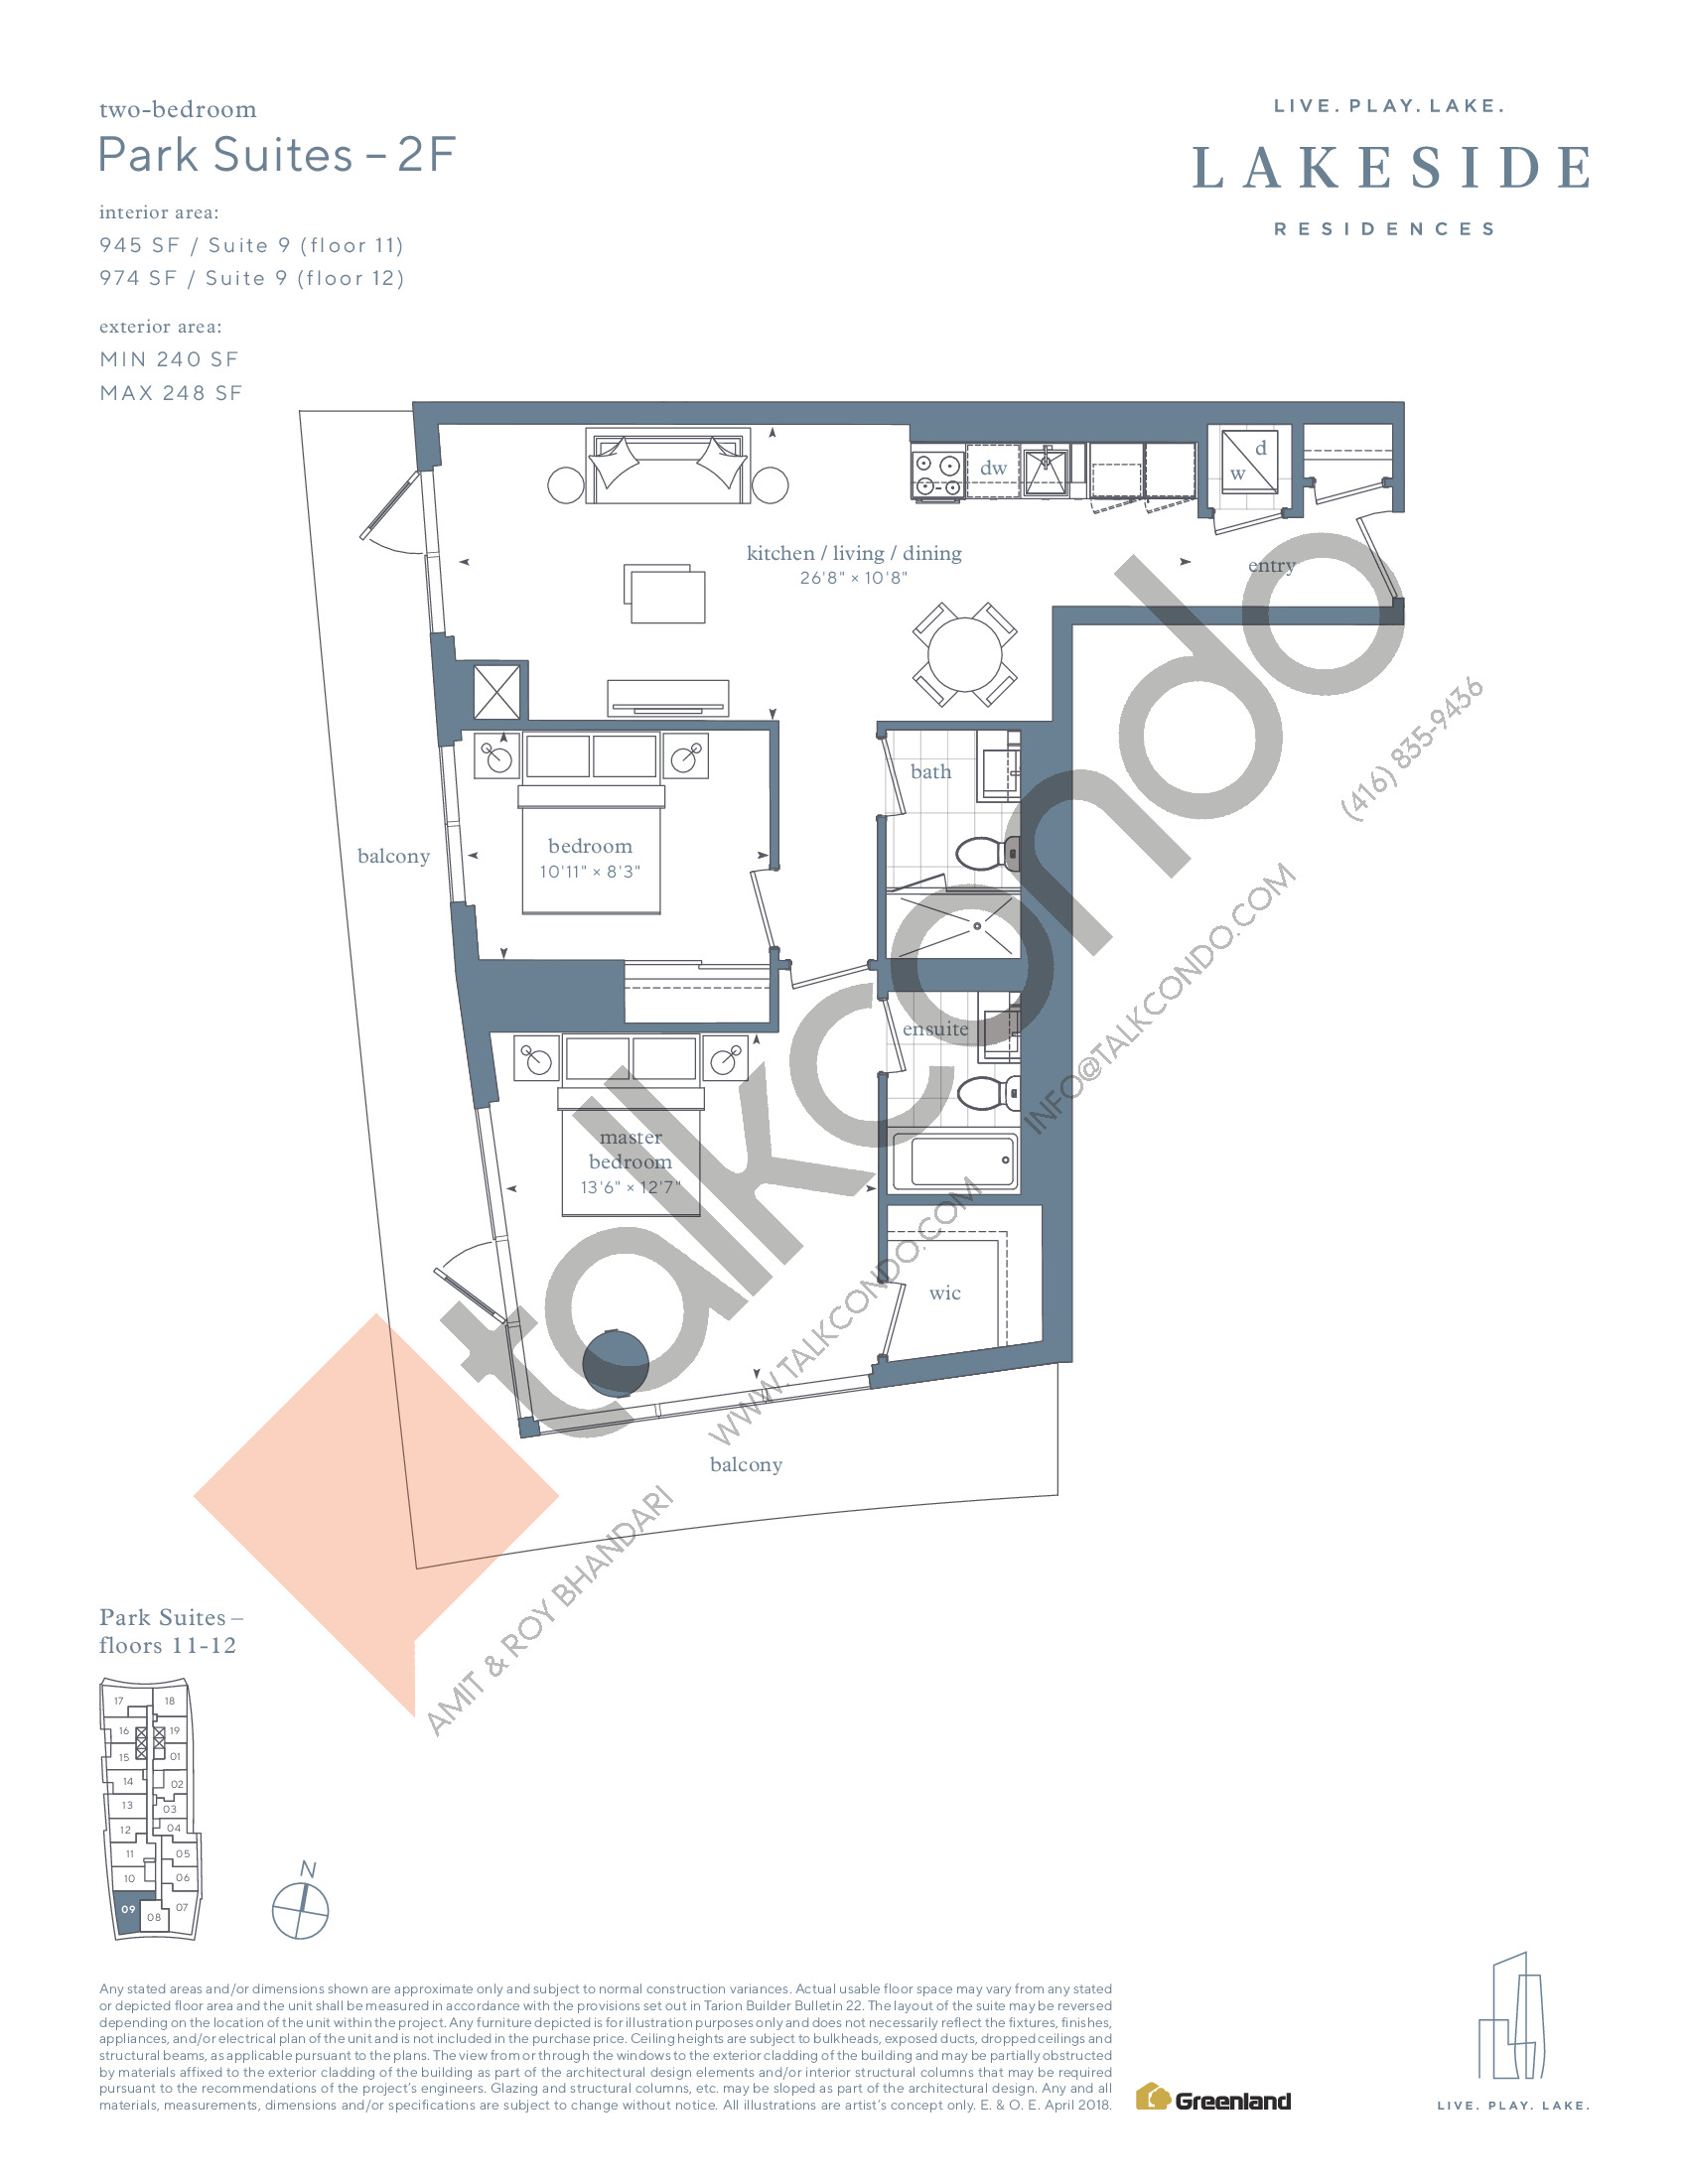 Park Suites - 2F Floor Plan at Lakeside Residences - 974 sq.ft